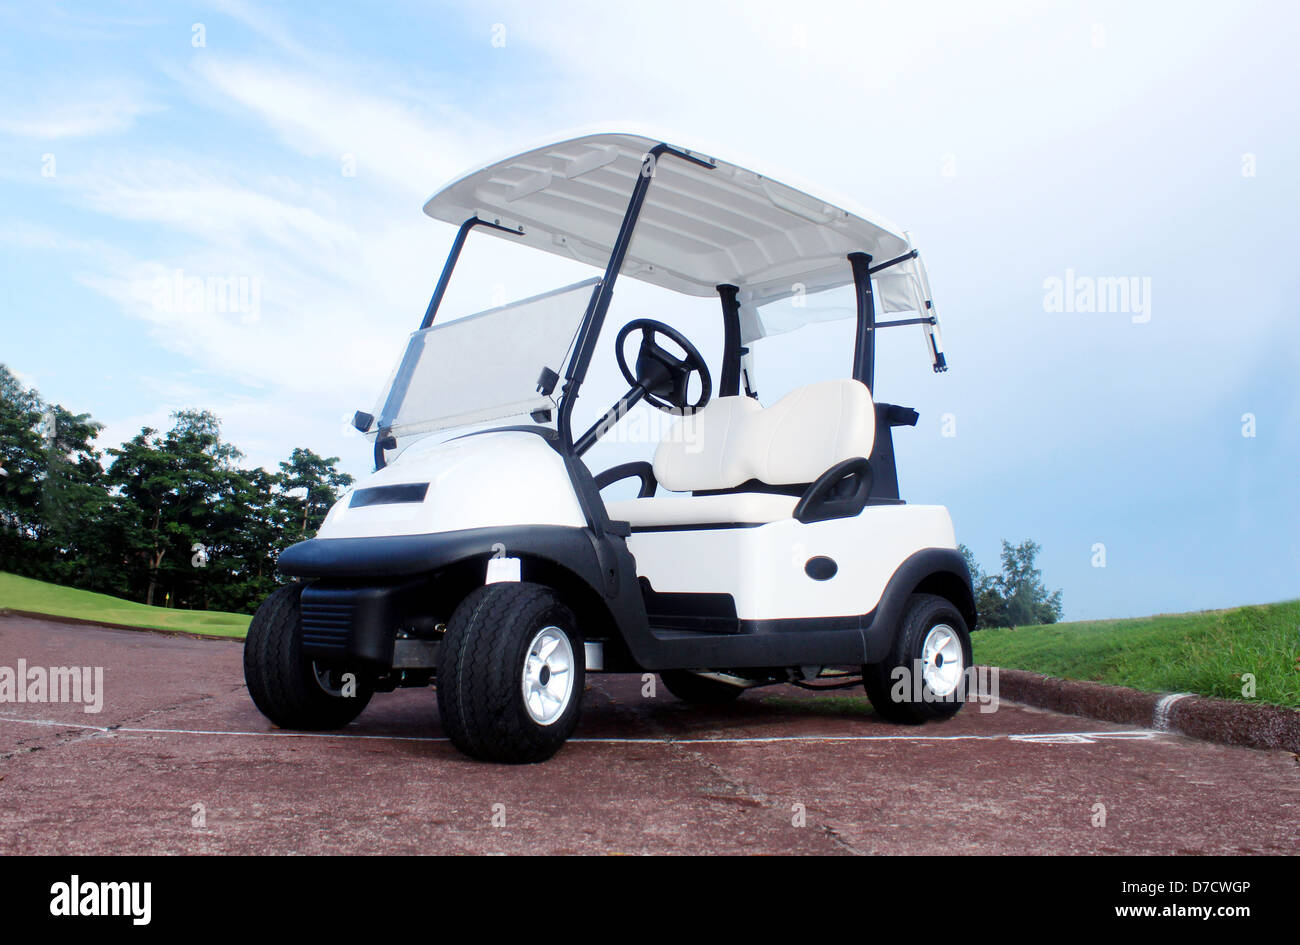 Brand new electric golf cart - Stock Image